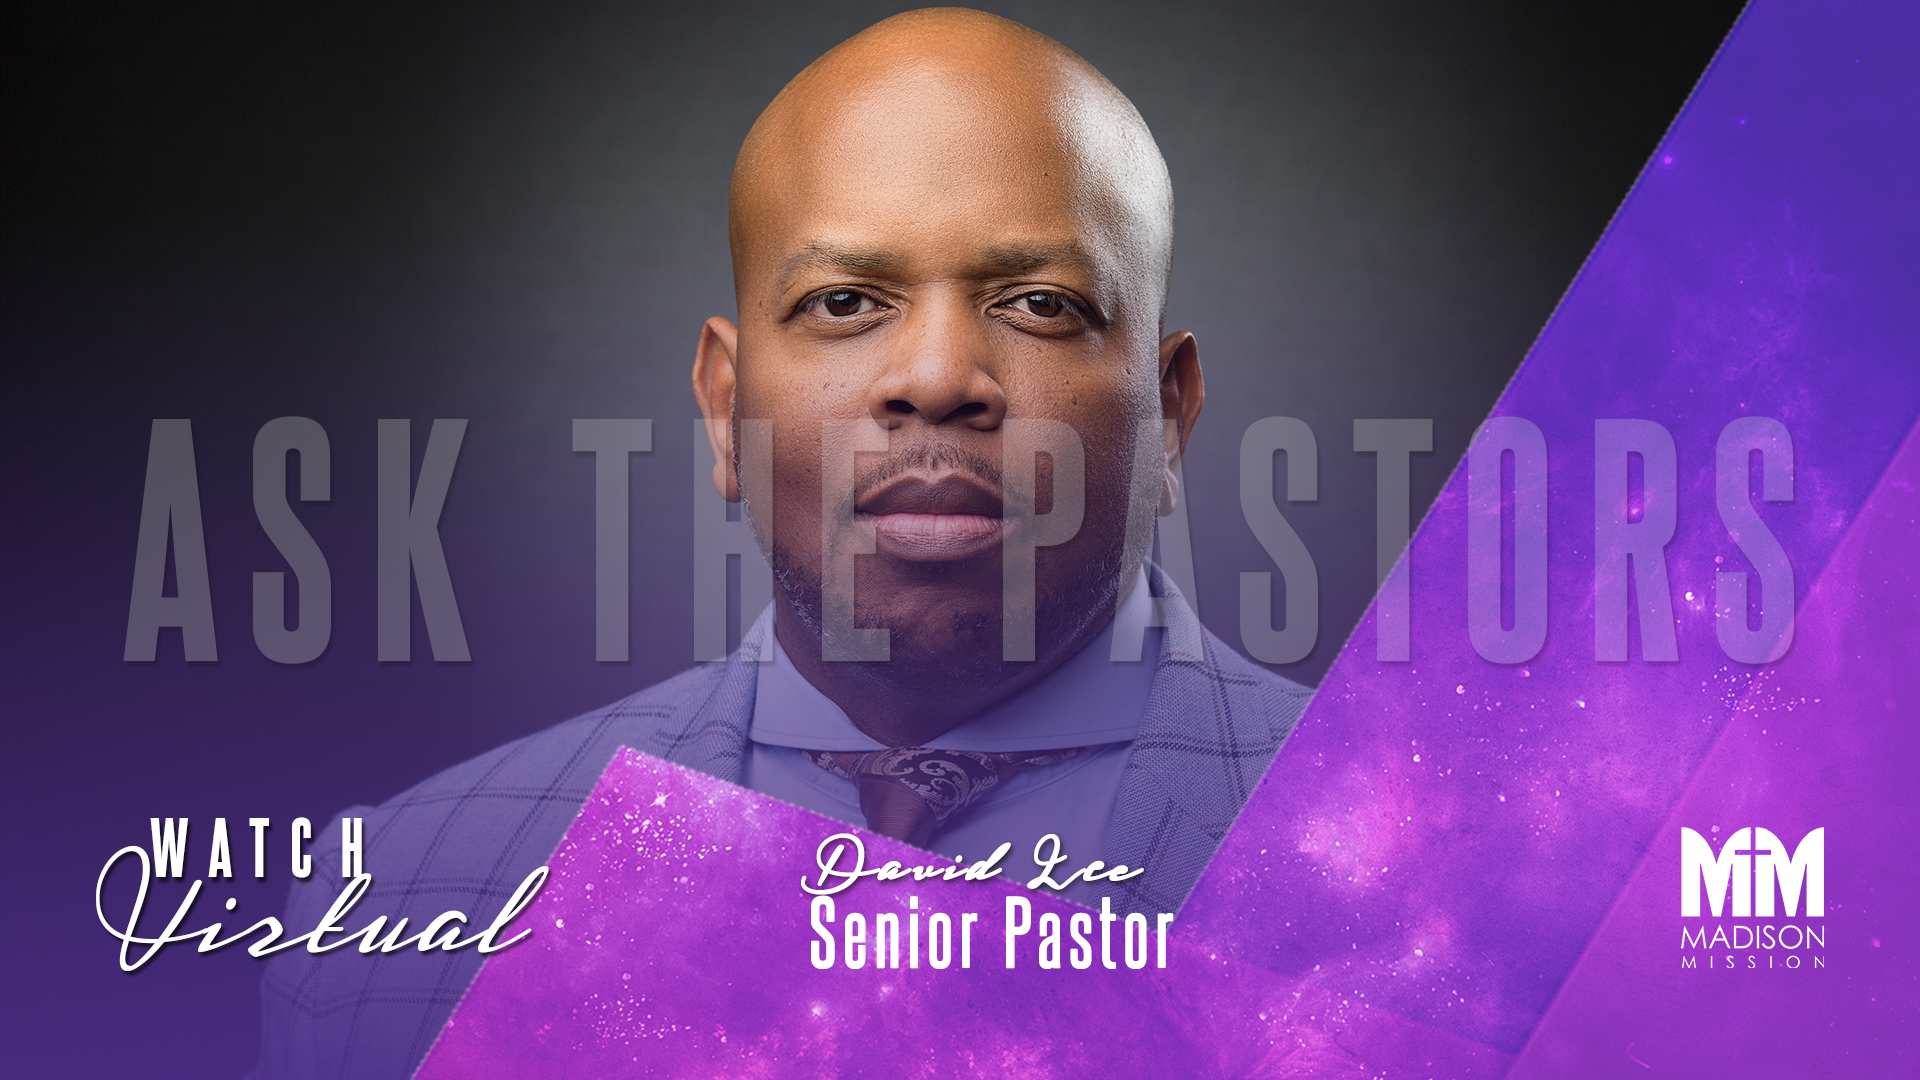 Ask The Pastor Part II Image